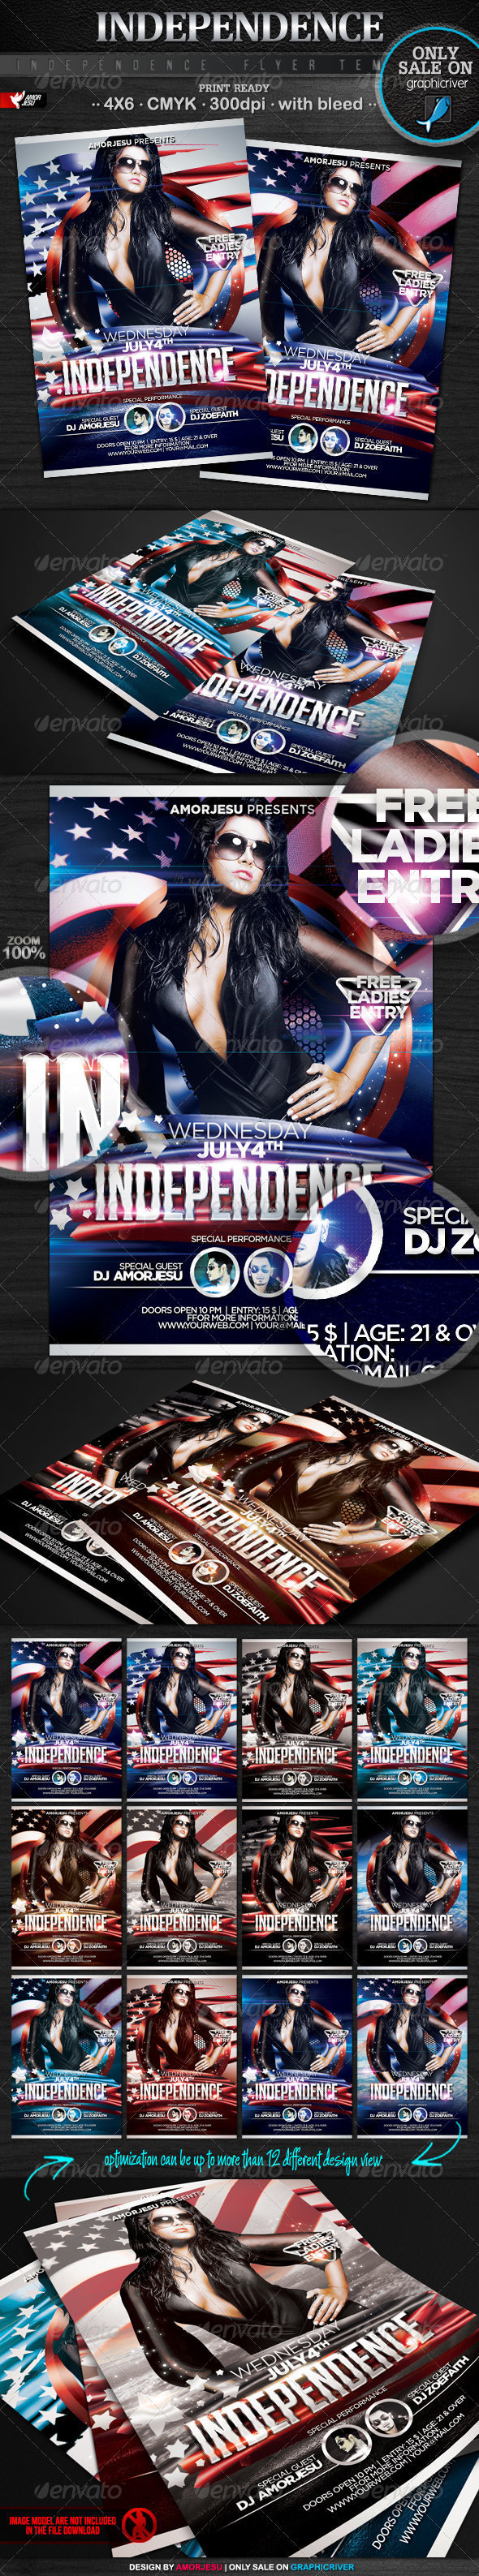 Independence Flyer Template - Events Flyers